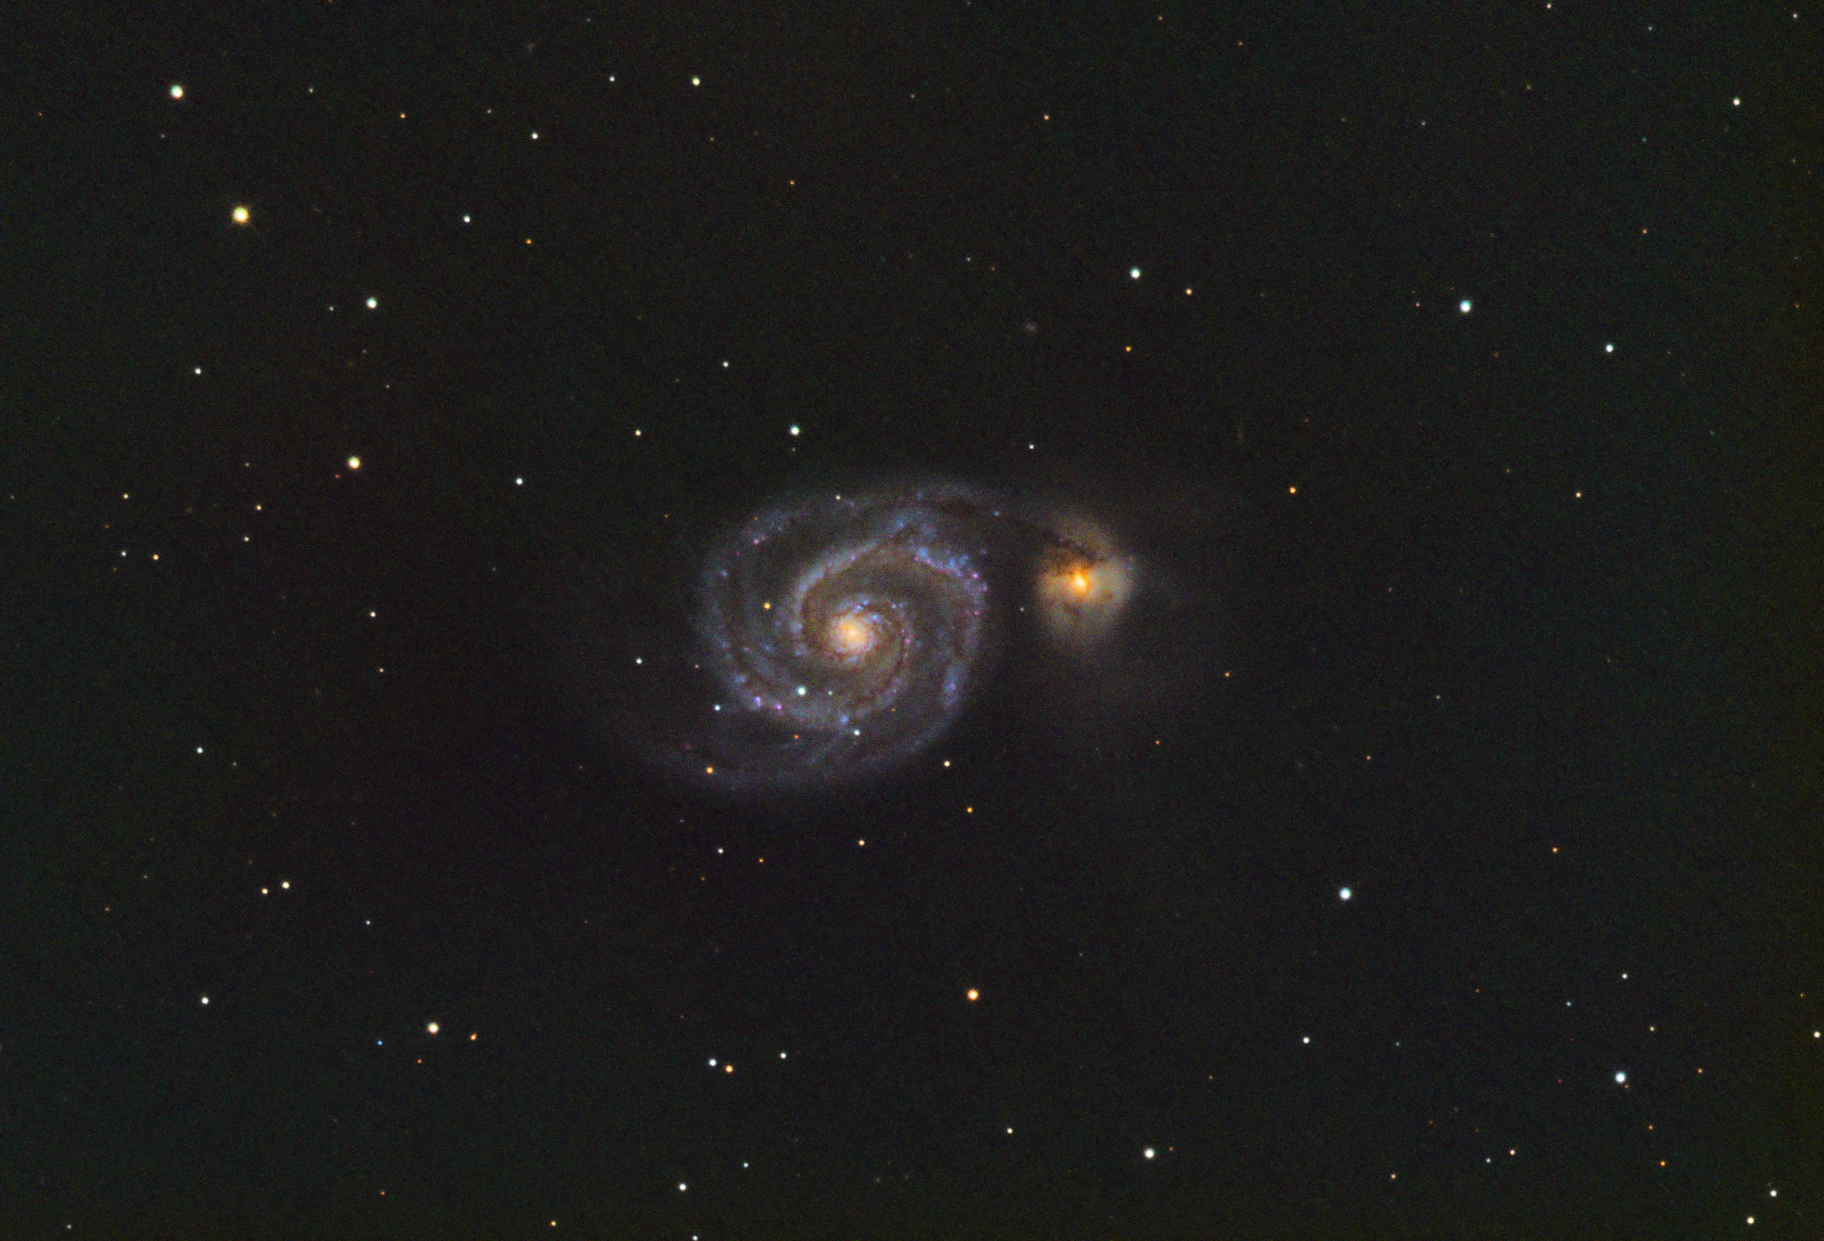 M51, Whirlpool galaxy taken on this setup later that evening.